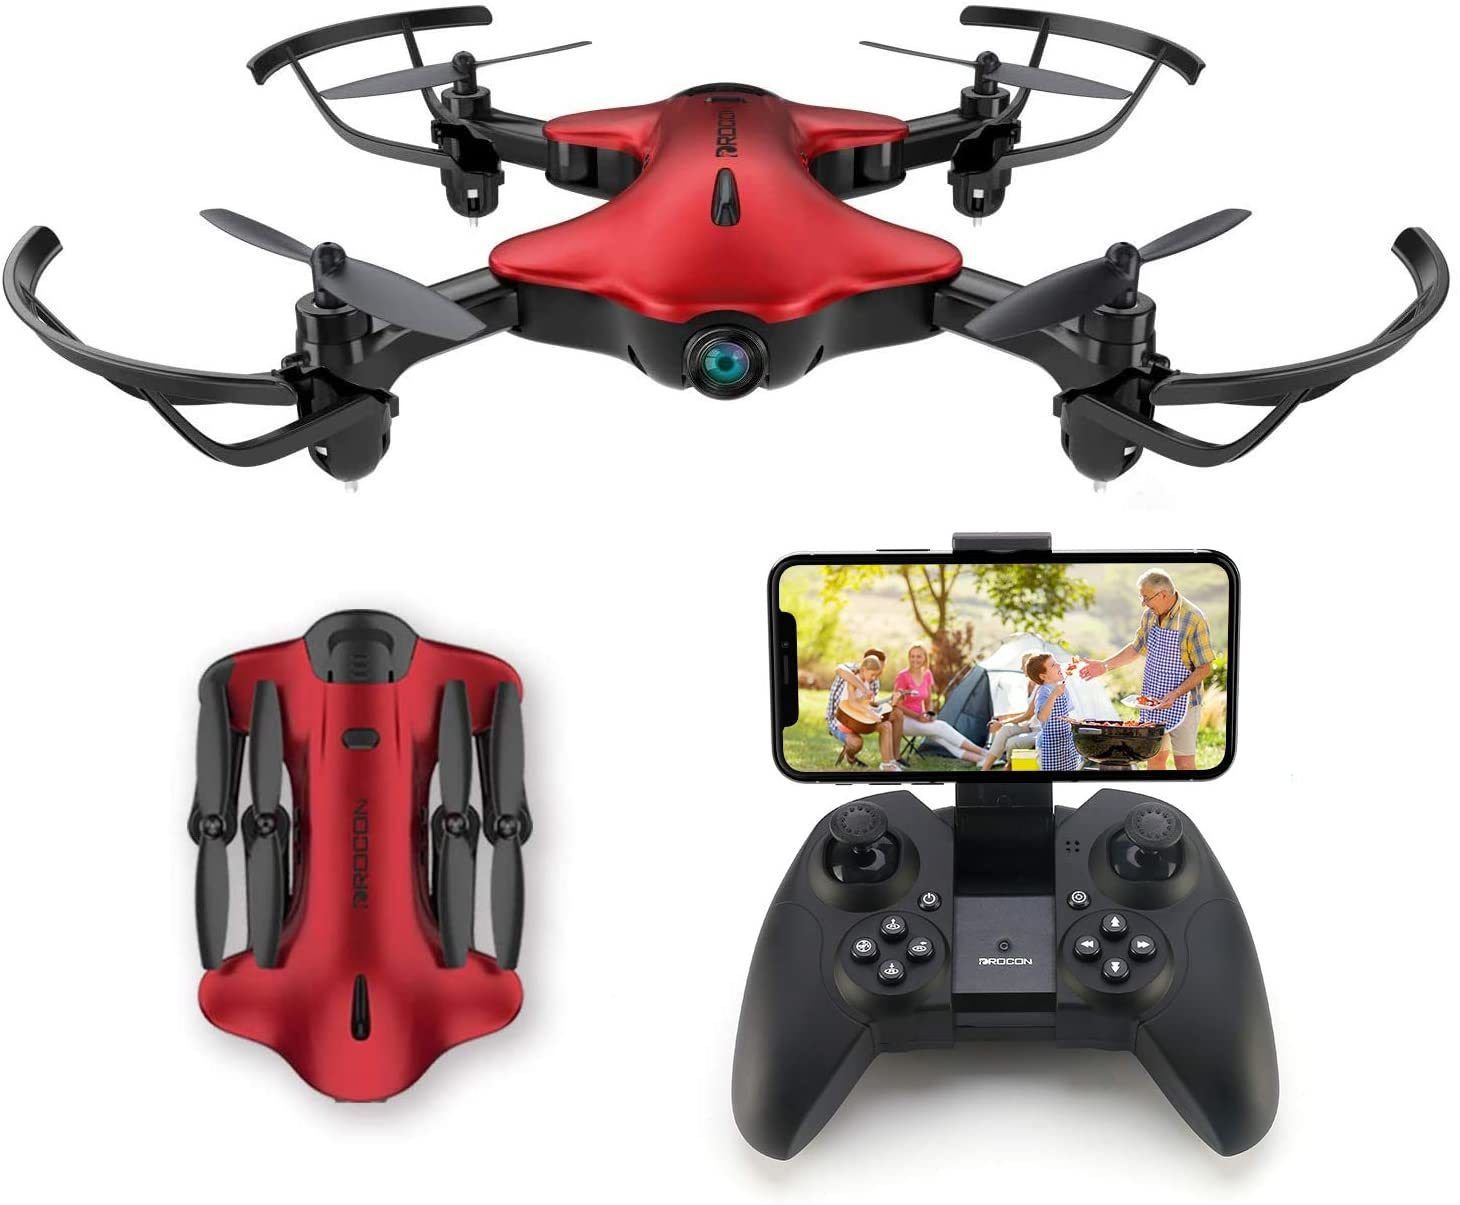 Drone for Kids, Drocon Spacekey FPV Wi-Fi Drone with Camera 1080P FHD